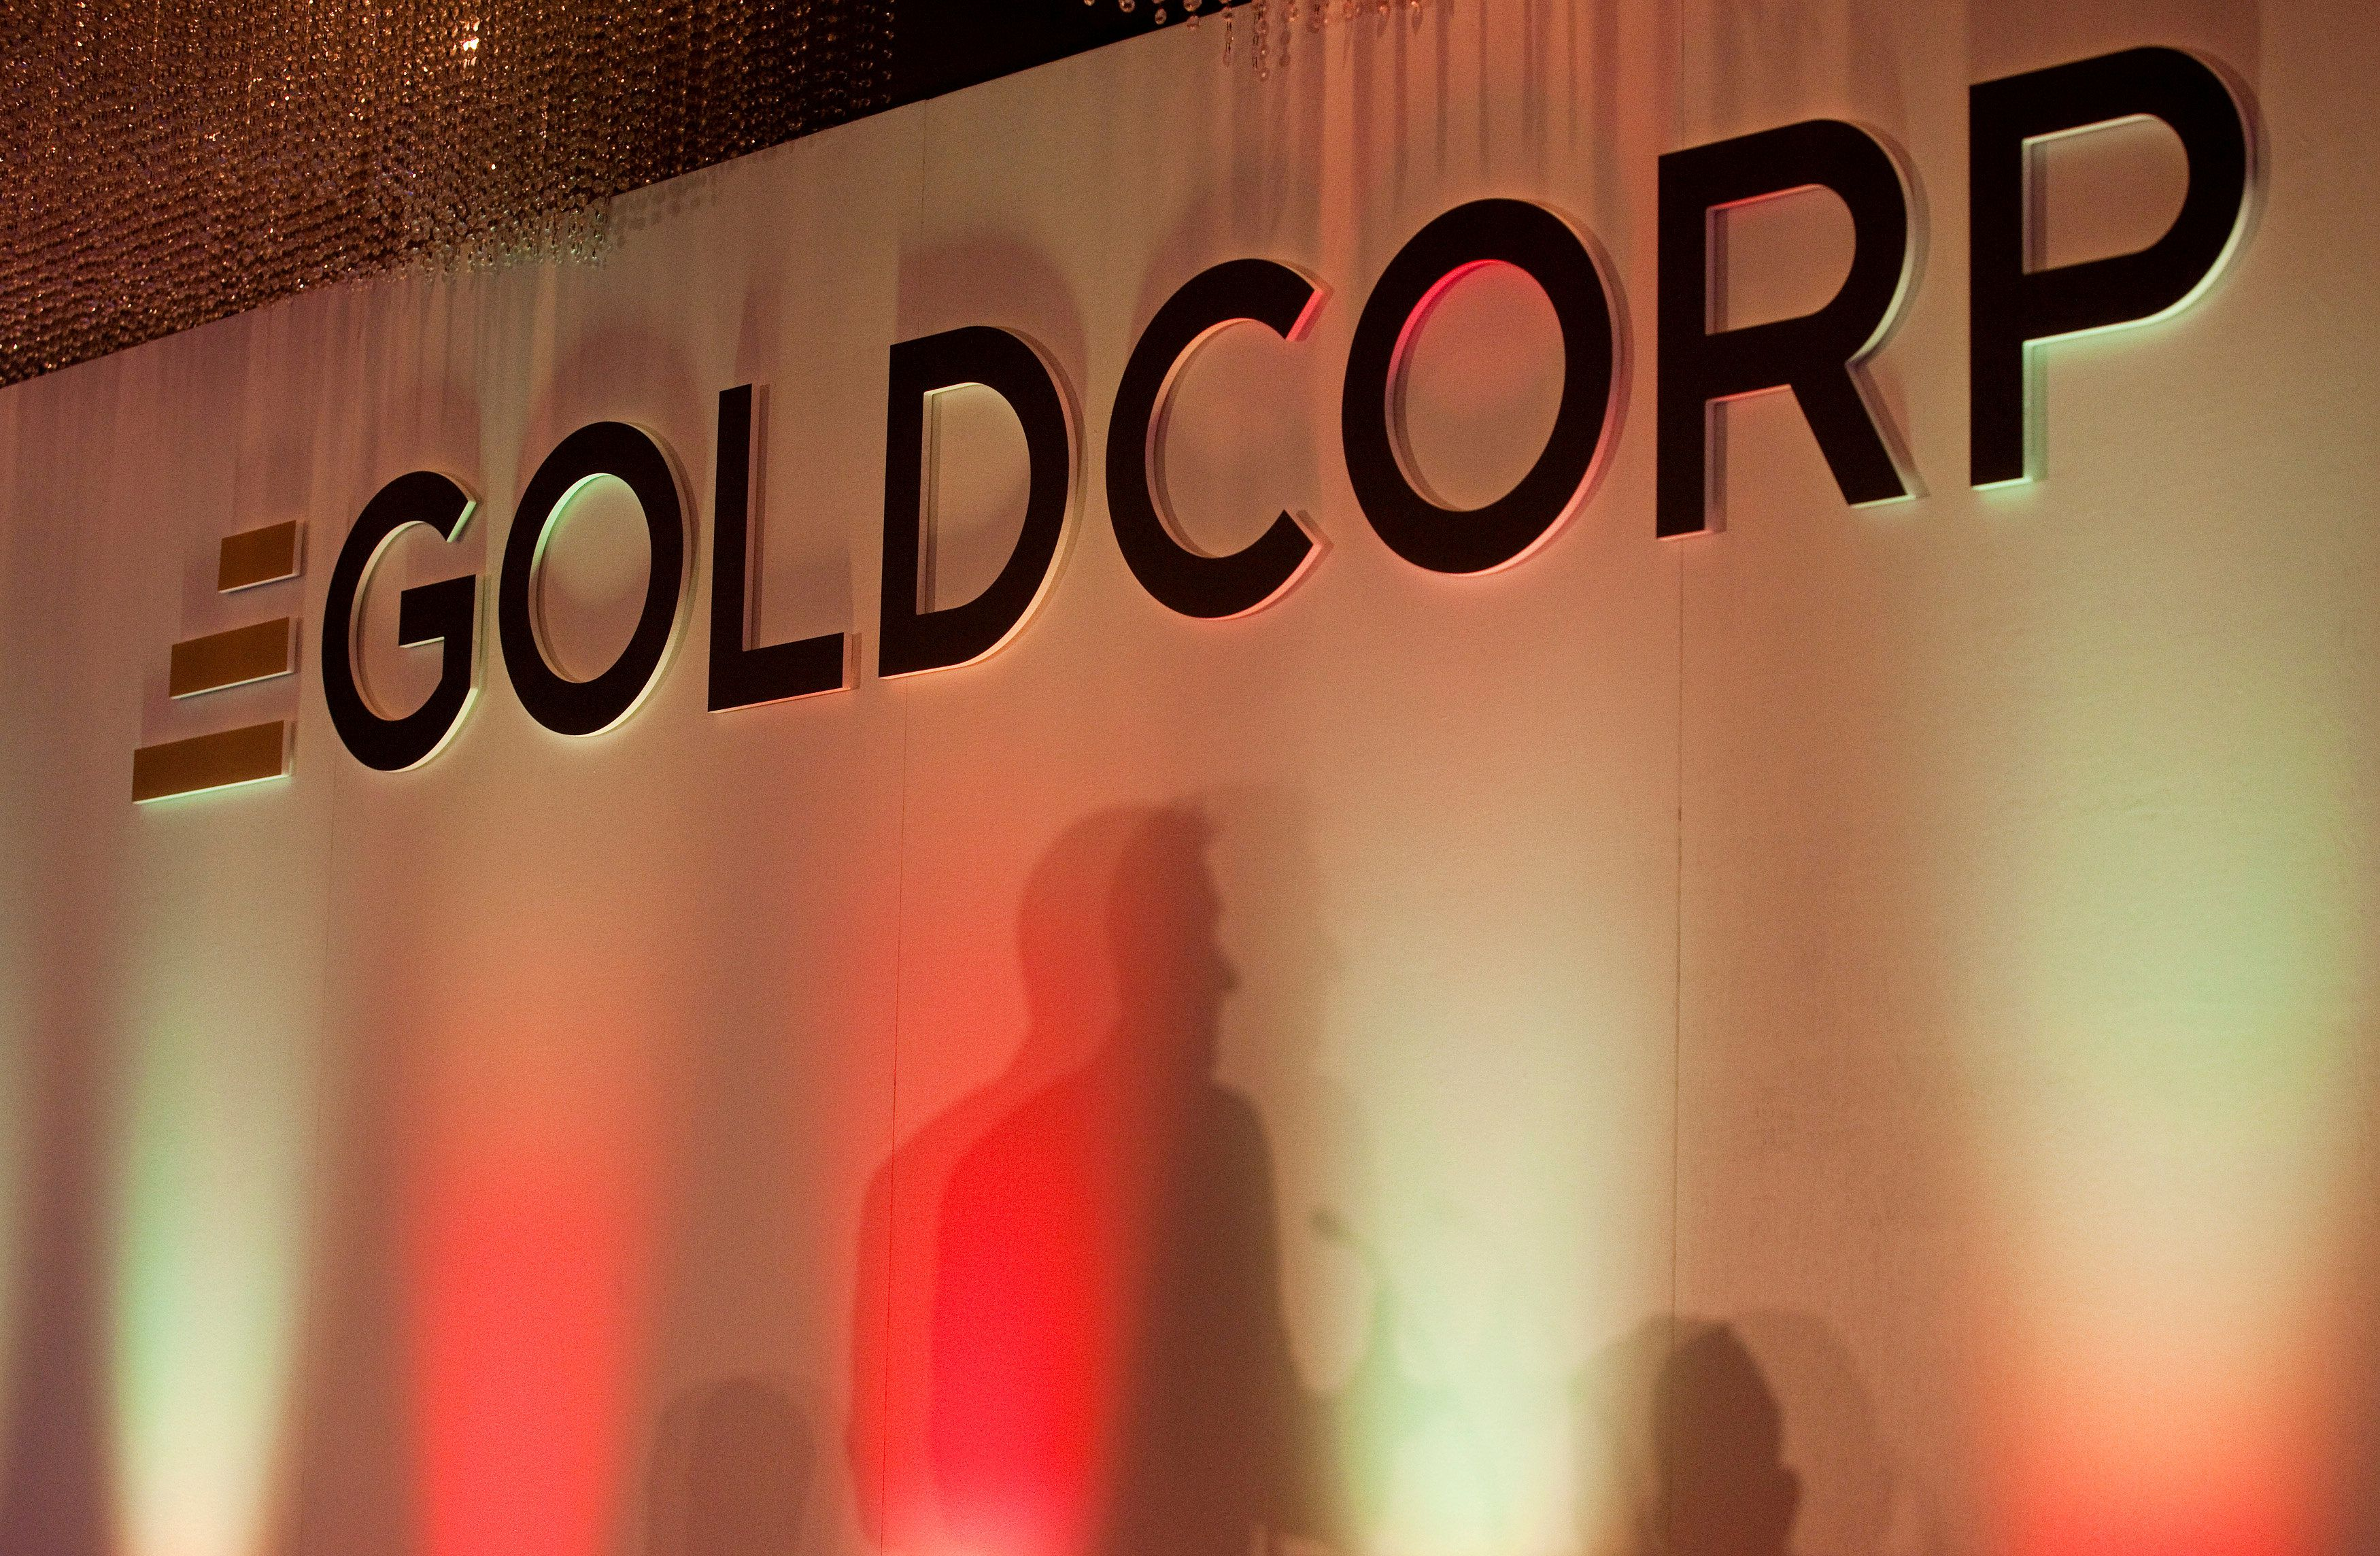 Goldcorp's adjusted profit misses expectations as output